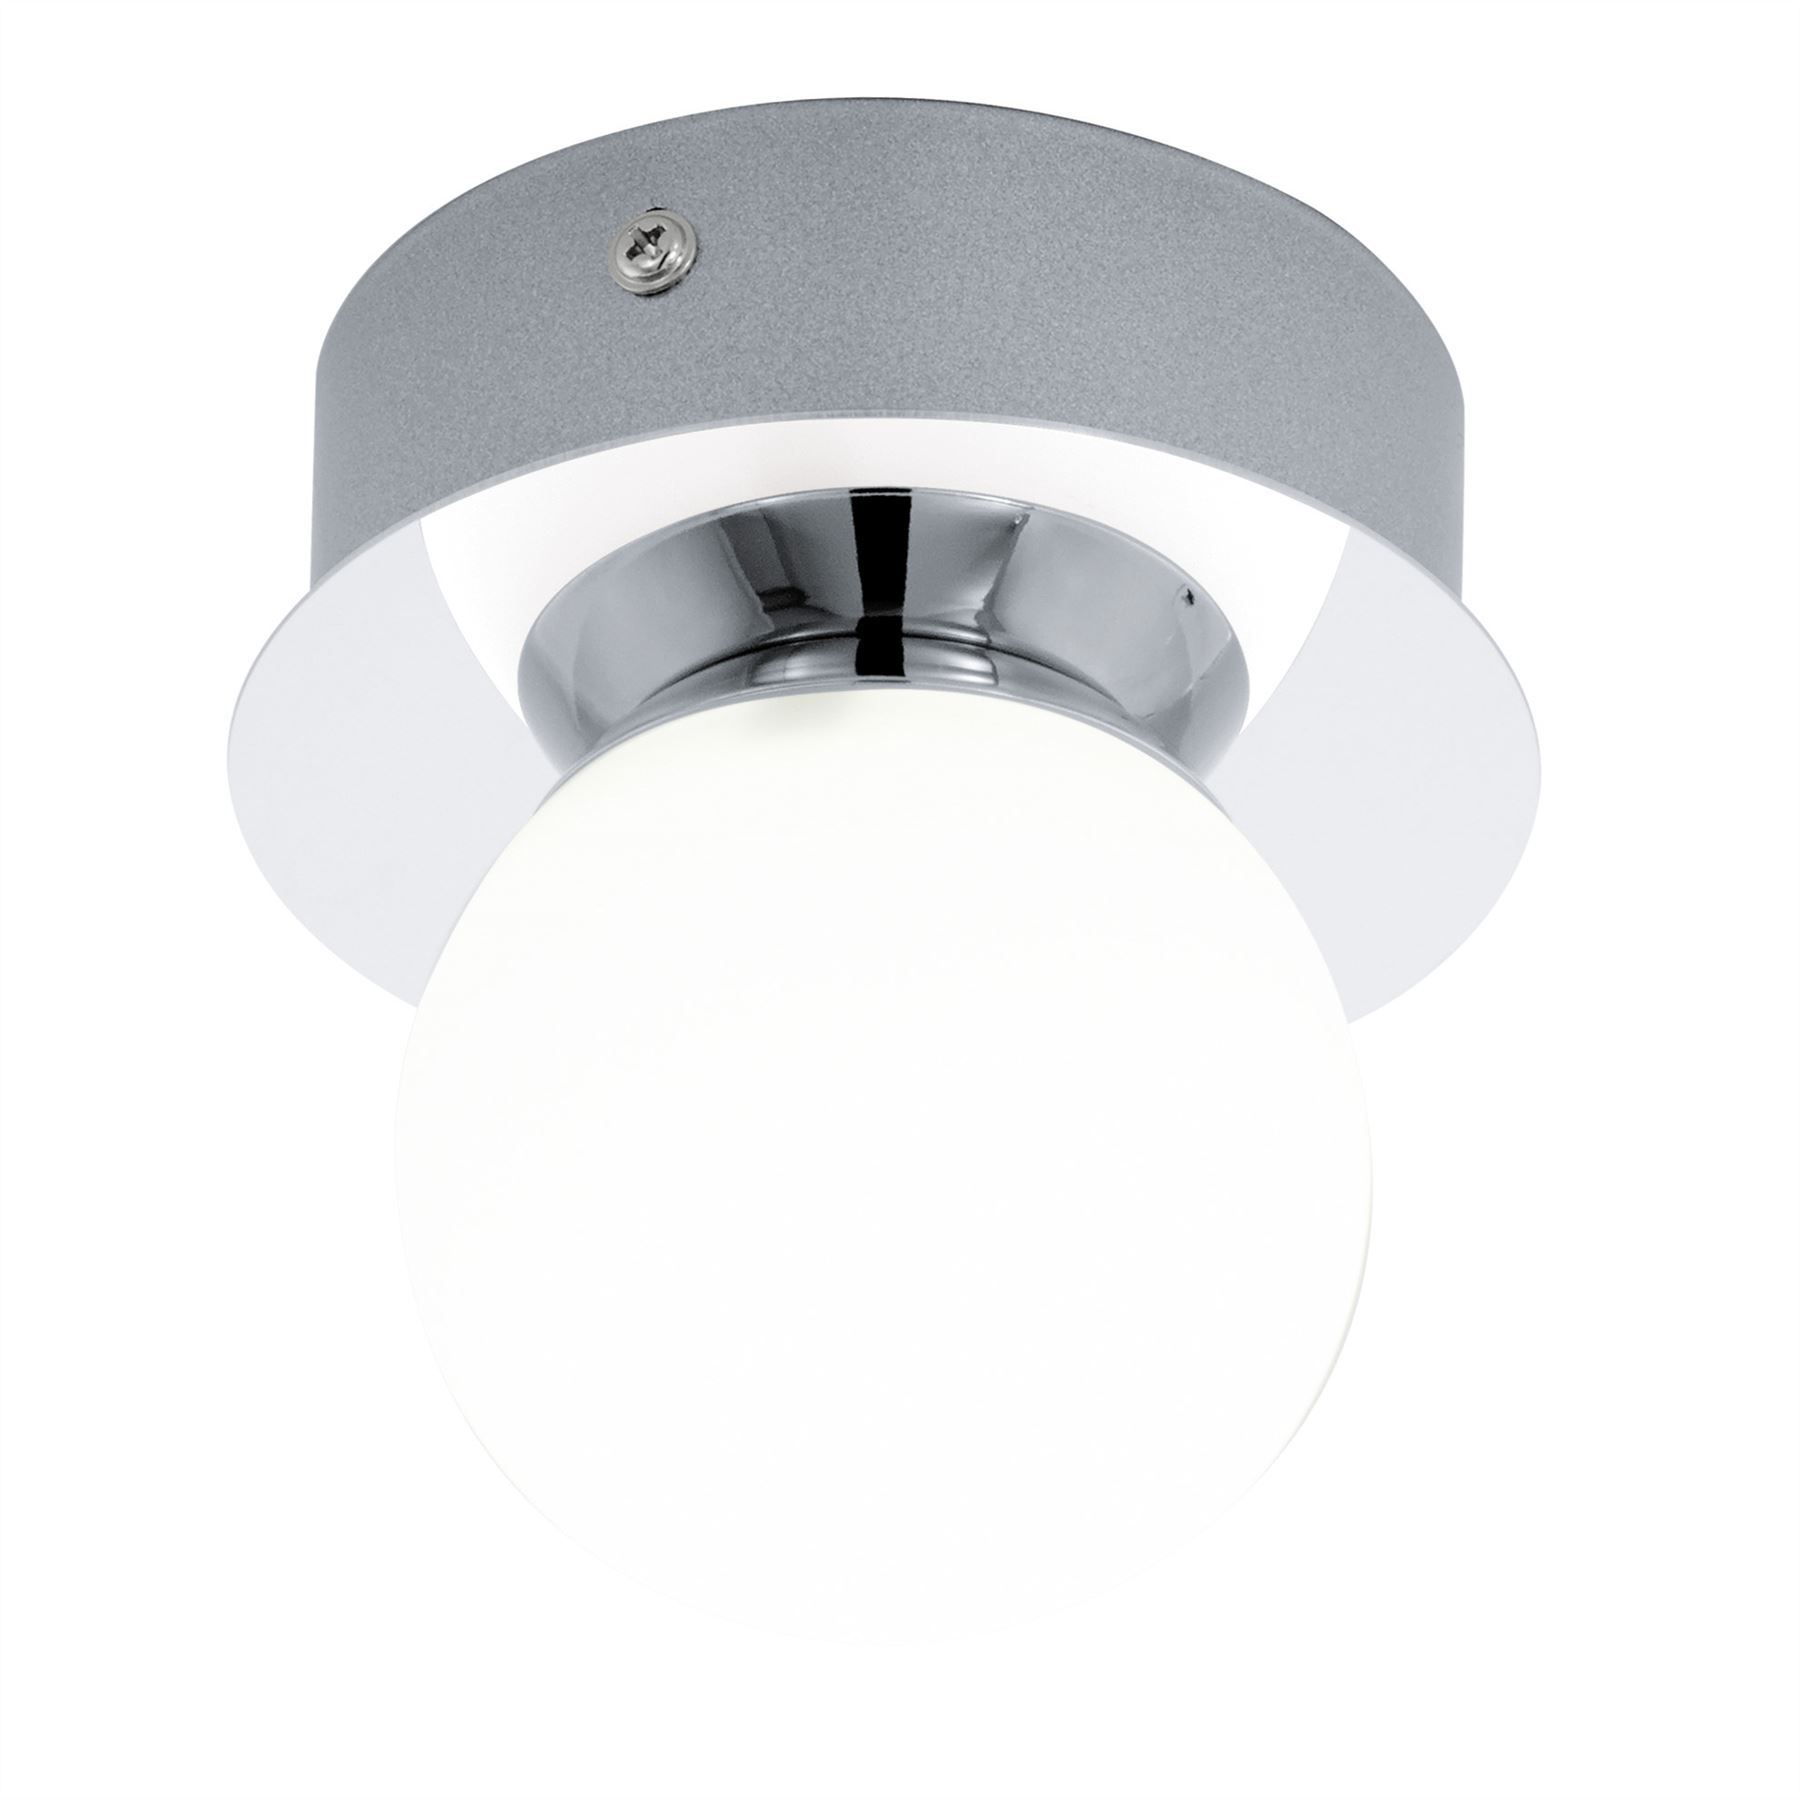 Mosiano LED Wall Light/Ceiling Light 1x 3.3W Stainless Steel Chrome